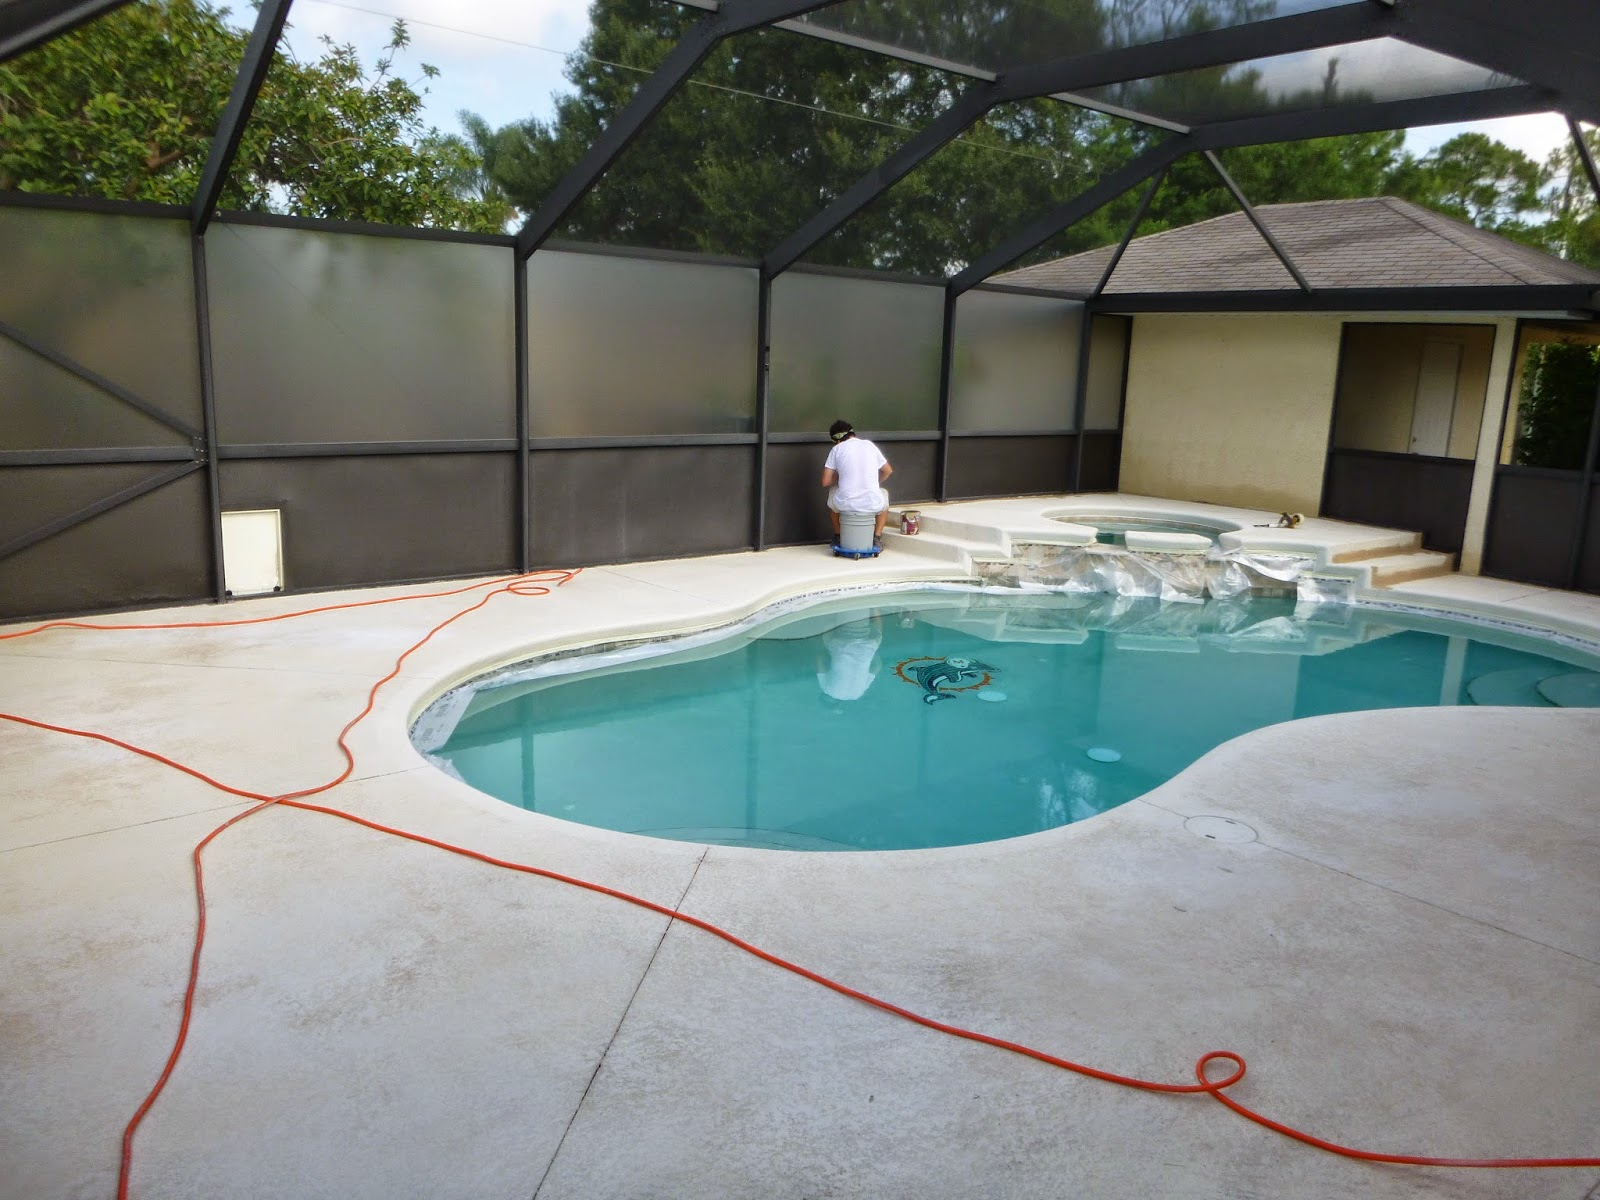 Patio Deck Concrete Staining Brilliant Painting Artists Corp  Painting Company Port St Lucie Fl 772